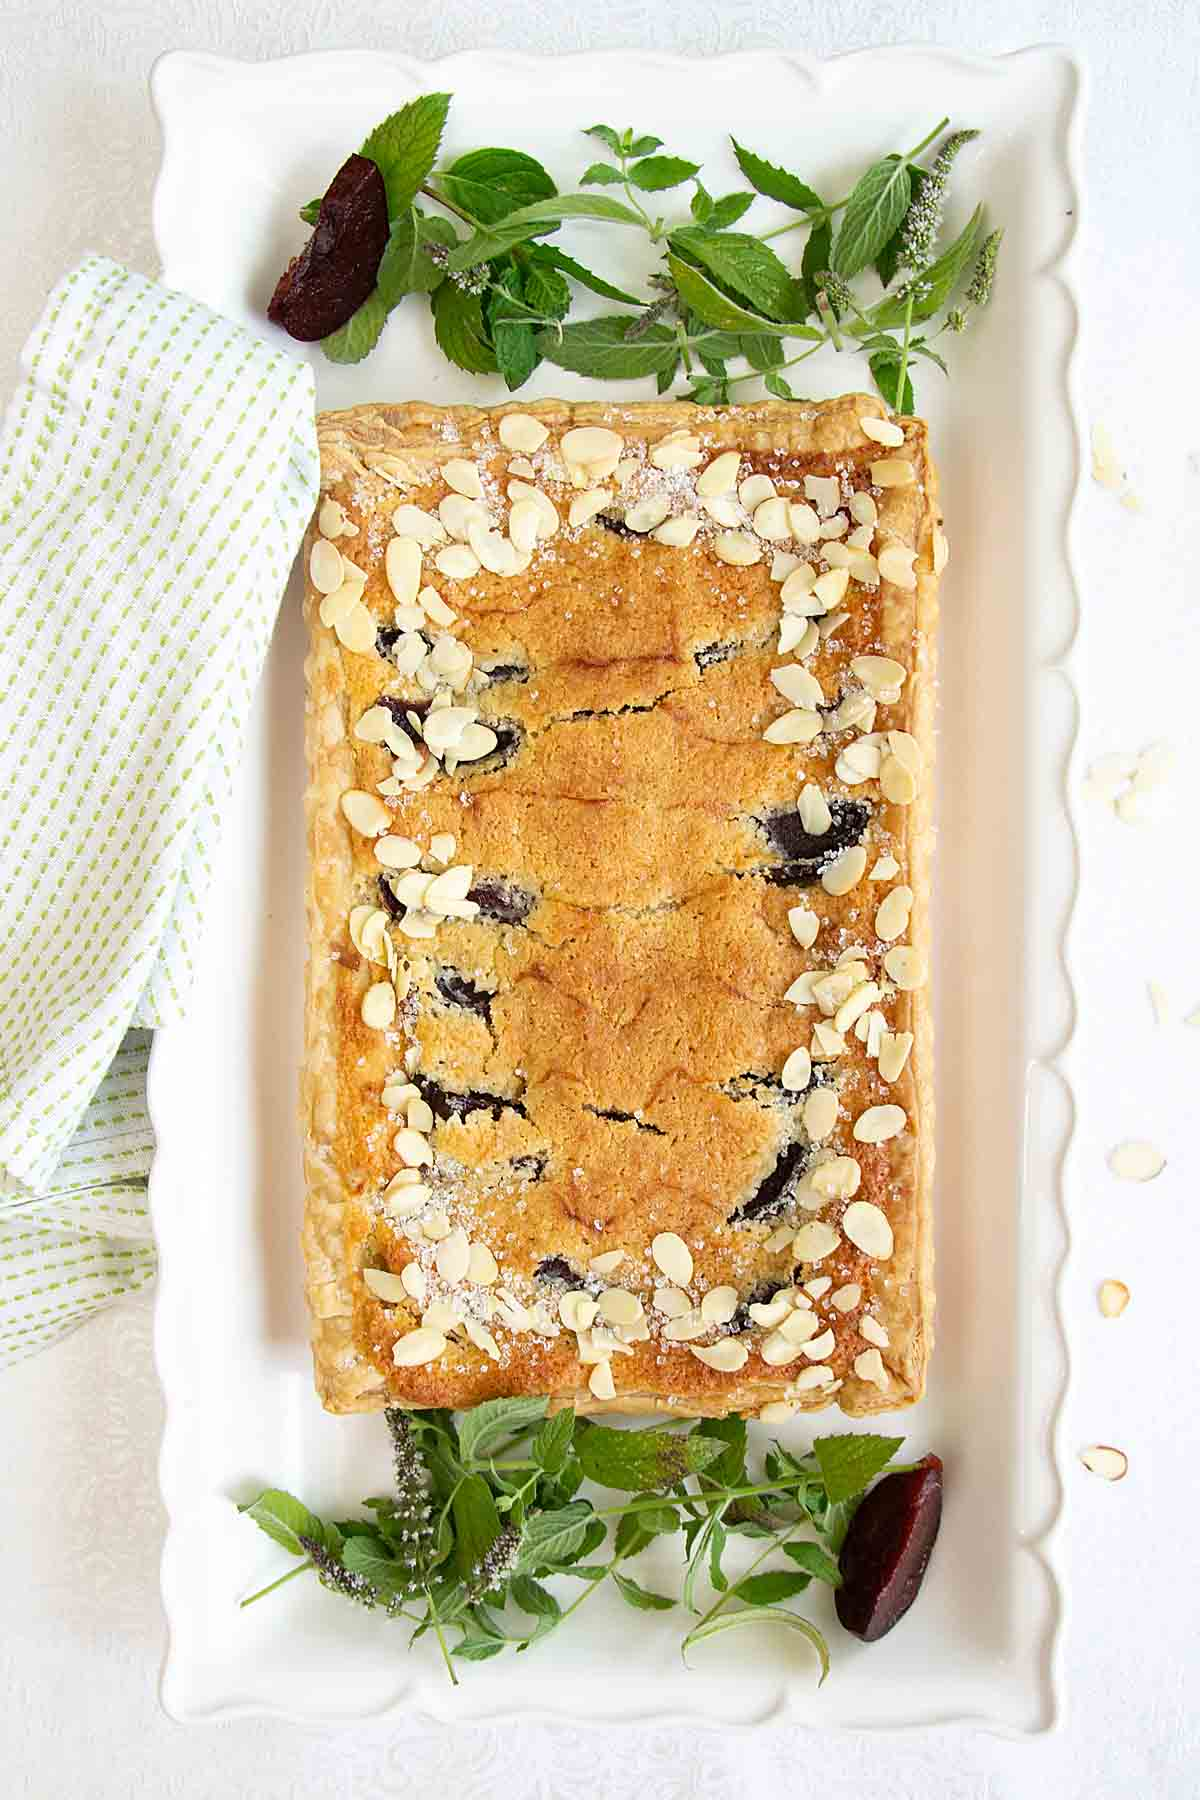 With ripe plums and rich almond cream atop a flaky crust, plum frangipane tart is a beautiful dessert that's super easy to make!